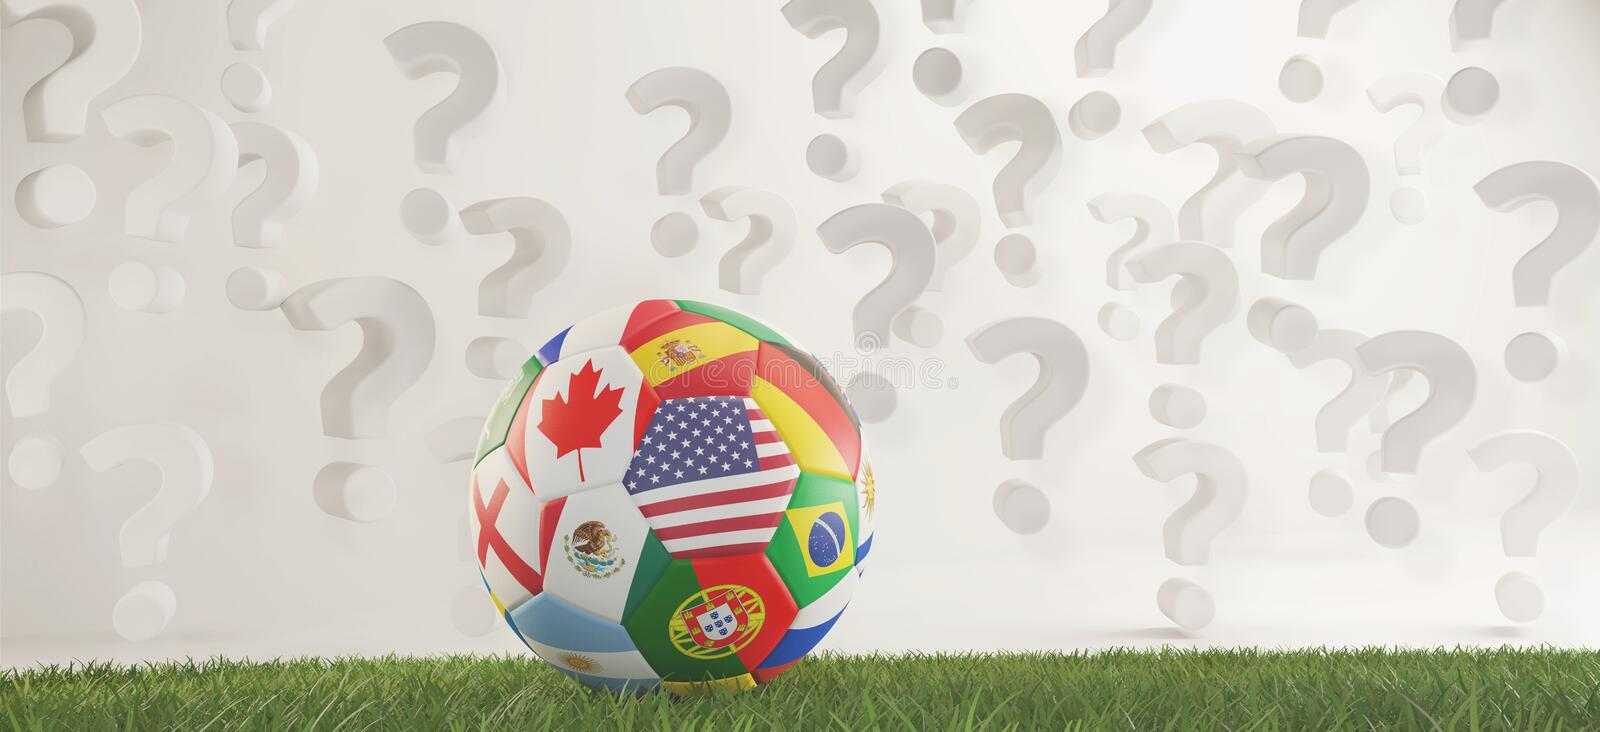 Soccer ball flags with question marks overlay 3d-illustration royalty free illustration